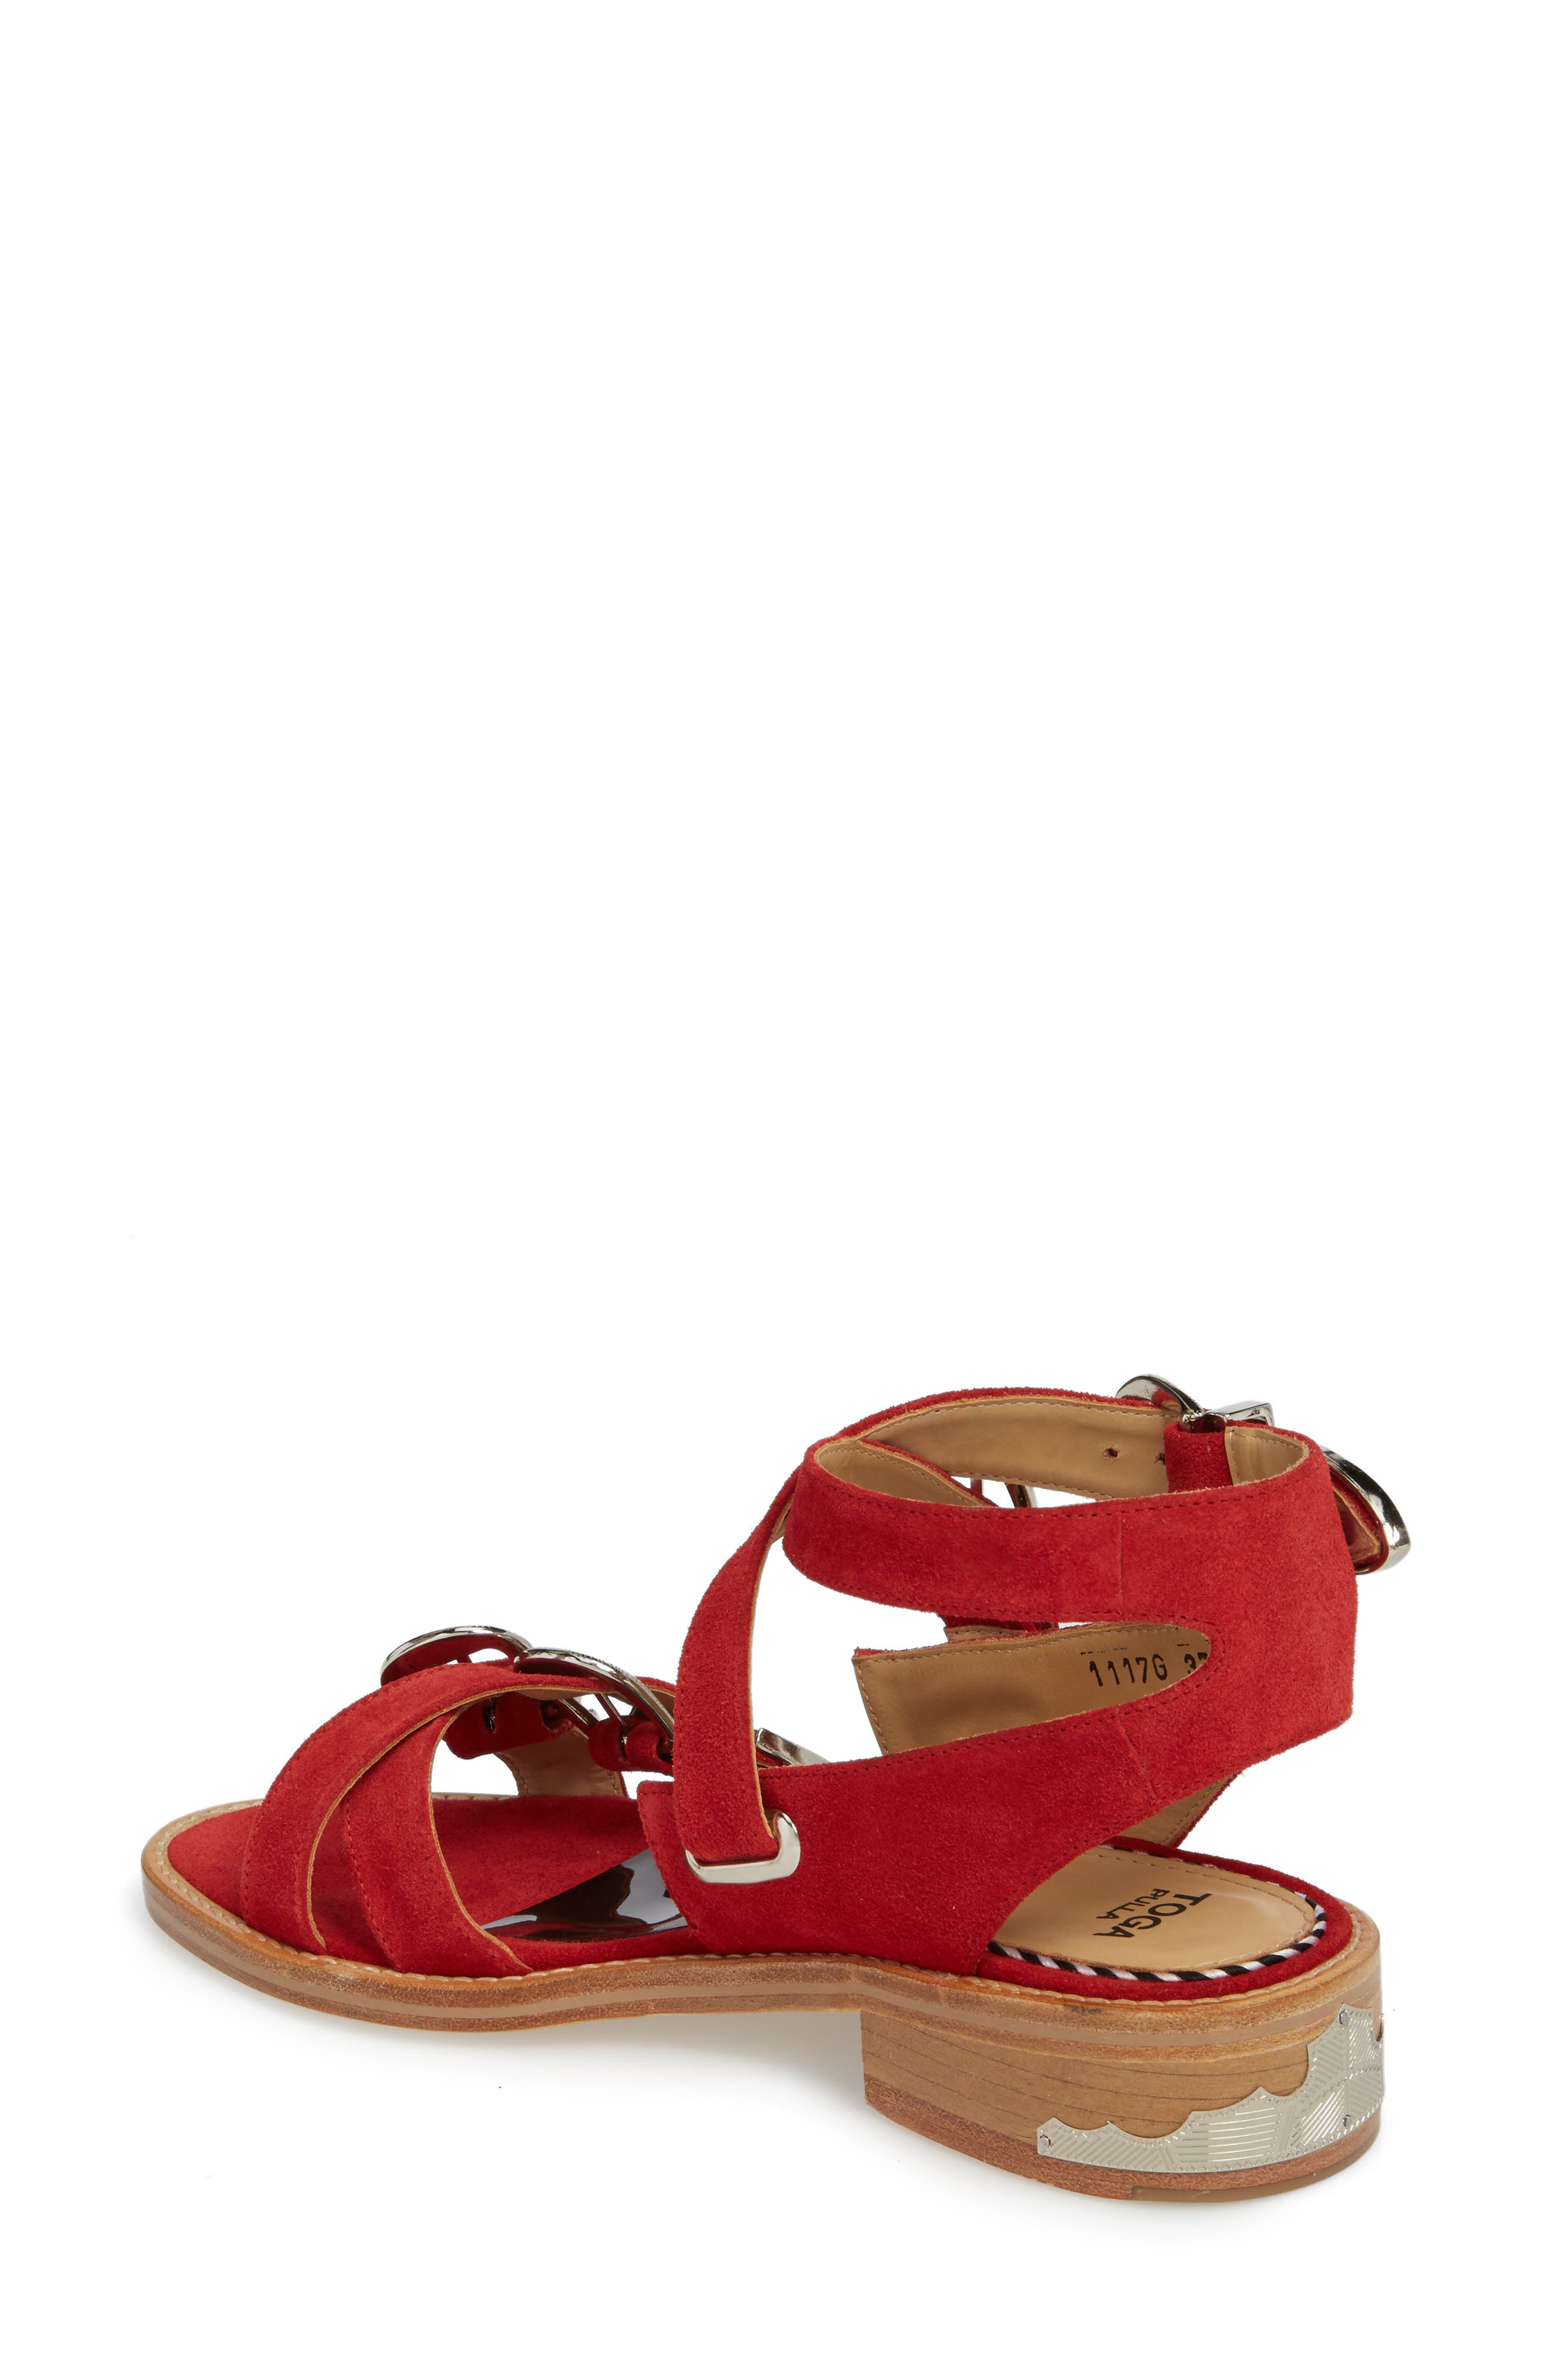 Western Suede Strappy Sandal,                             Alternate thumbnail 2, color,                             Red Suede